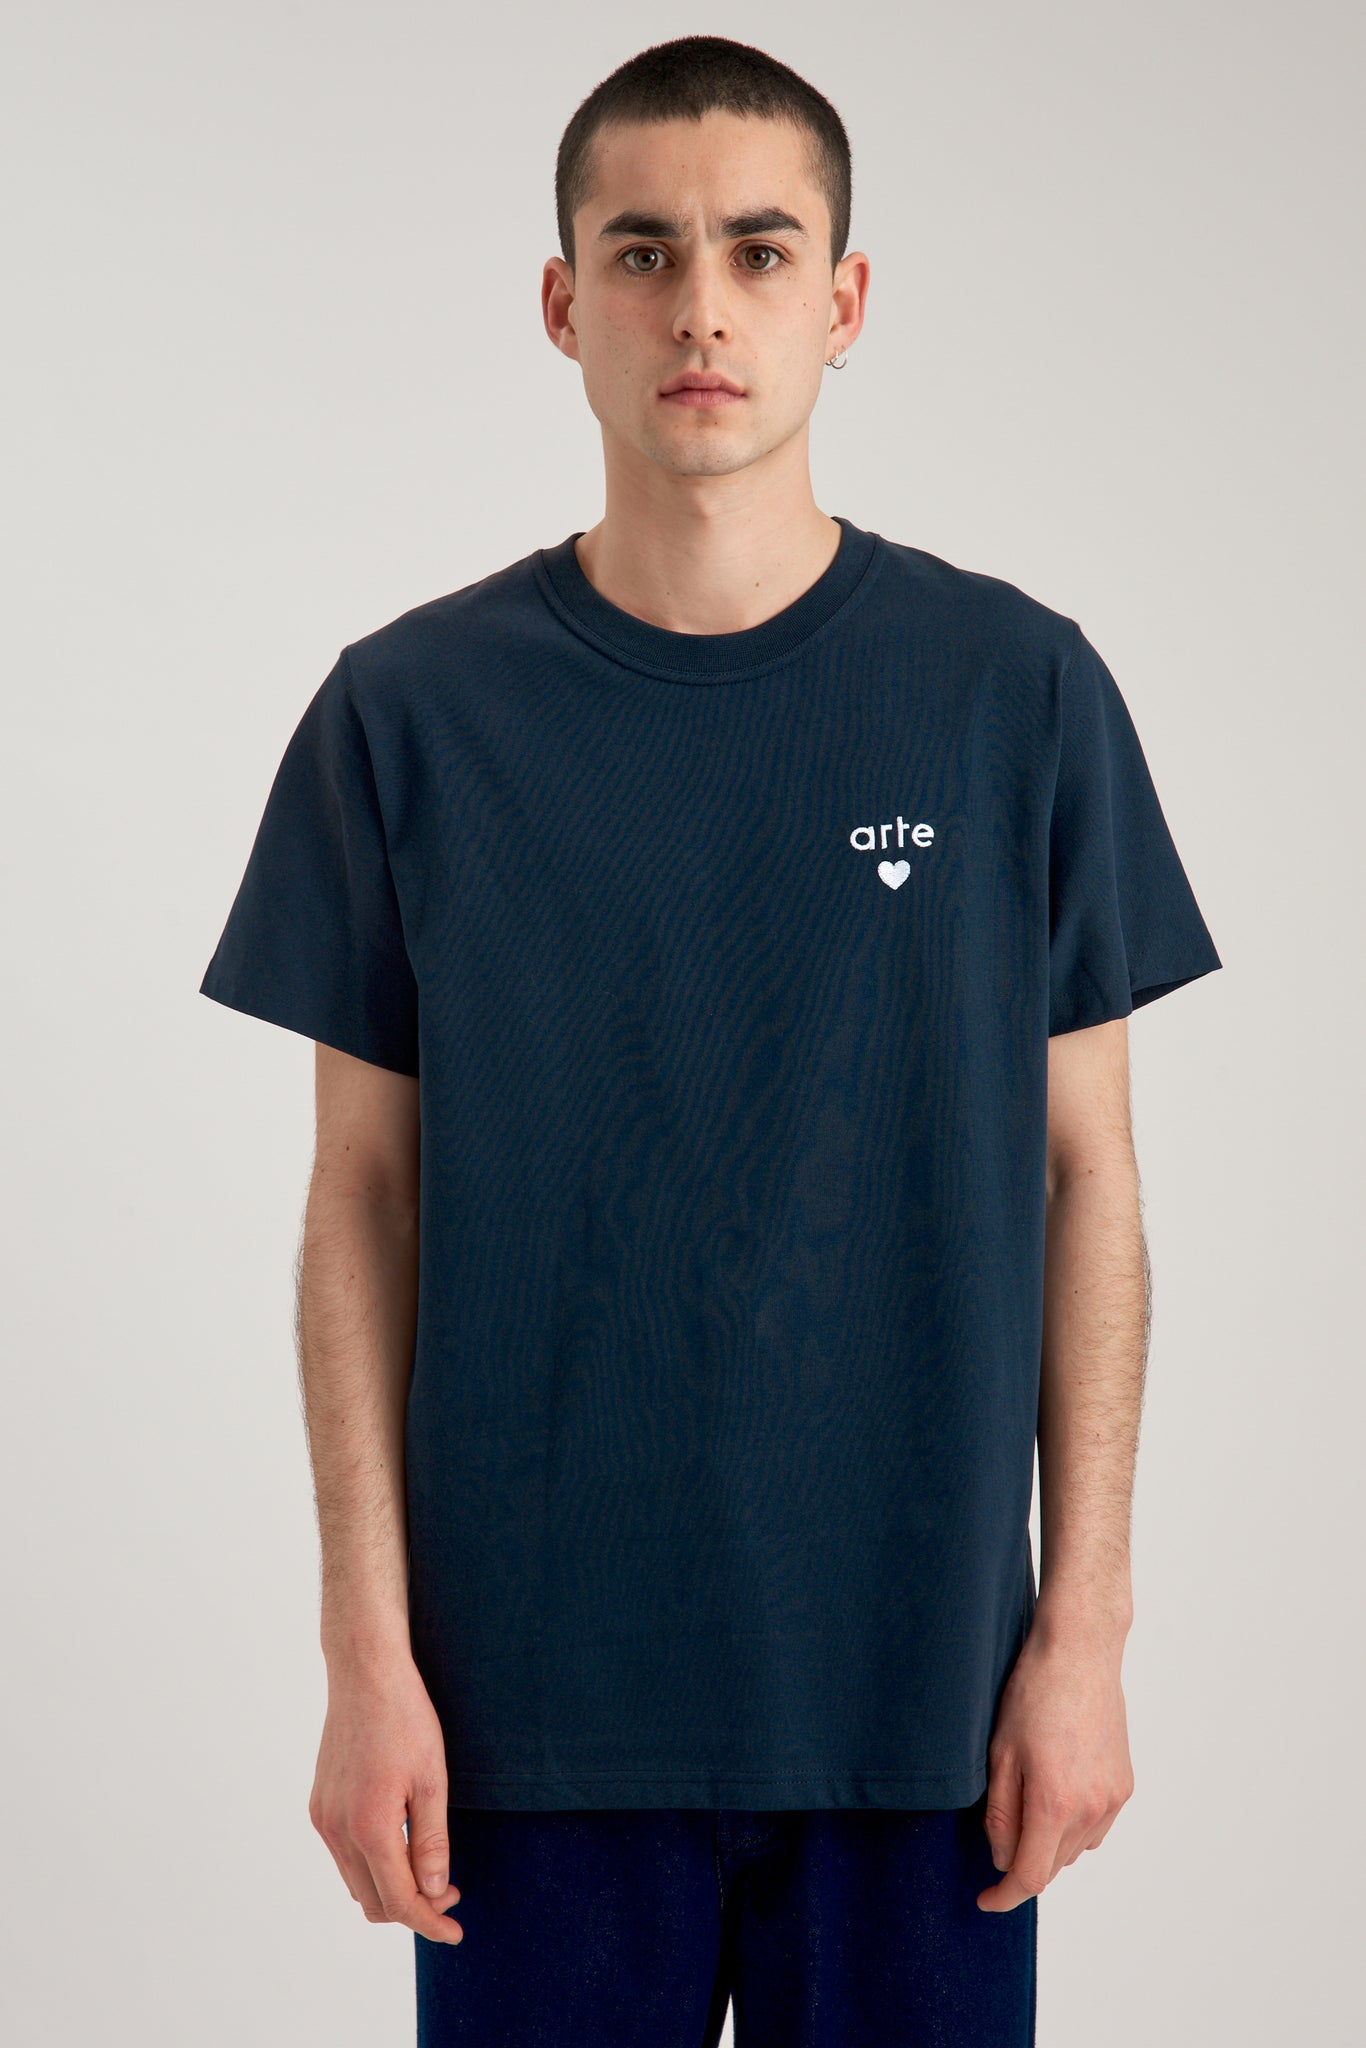 Thomas Heart Navy T-shirt - Arte Antwerp